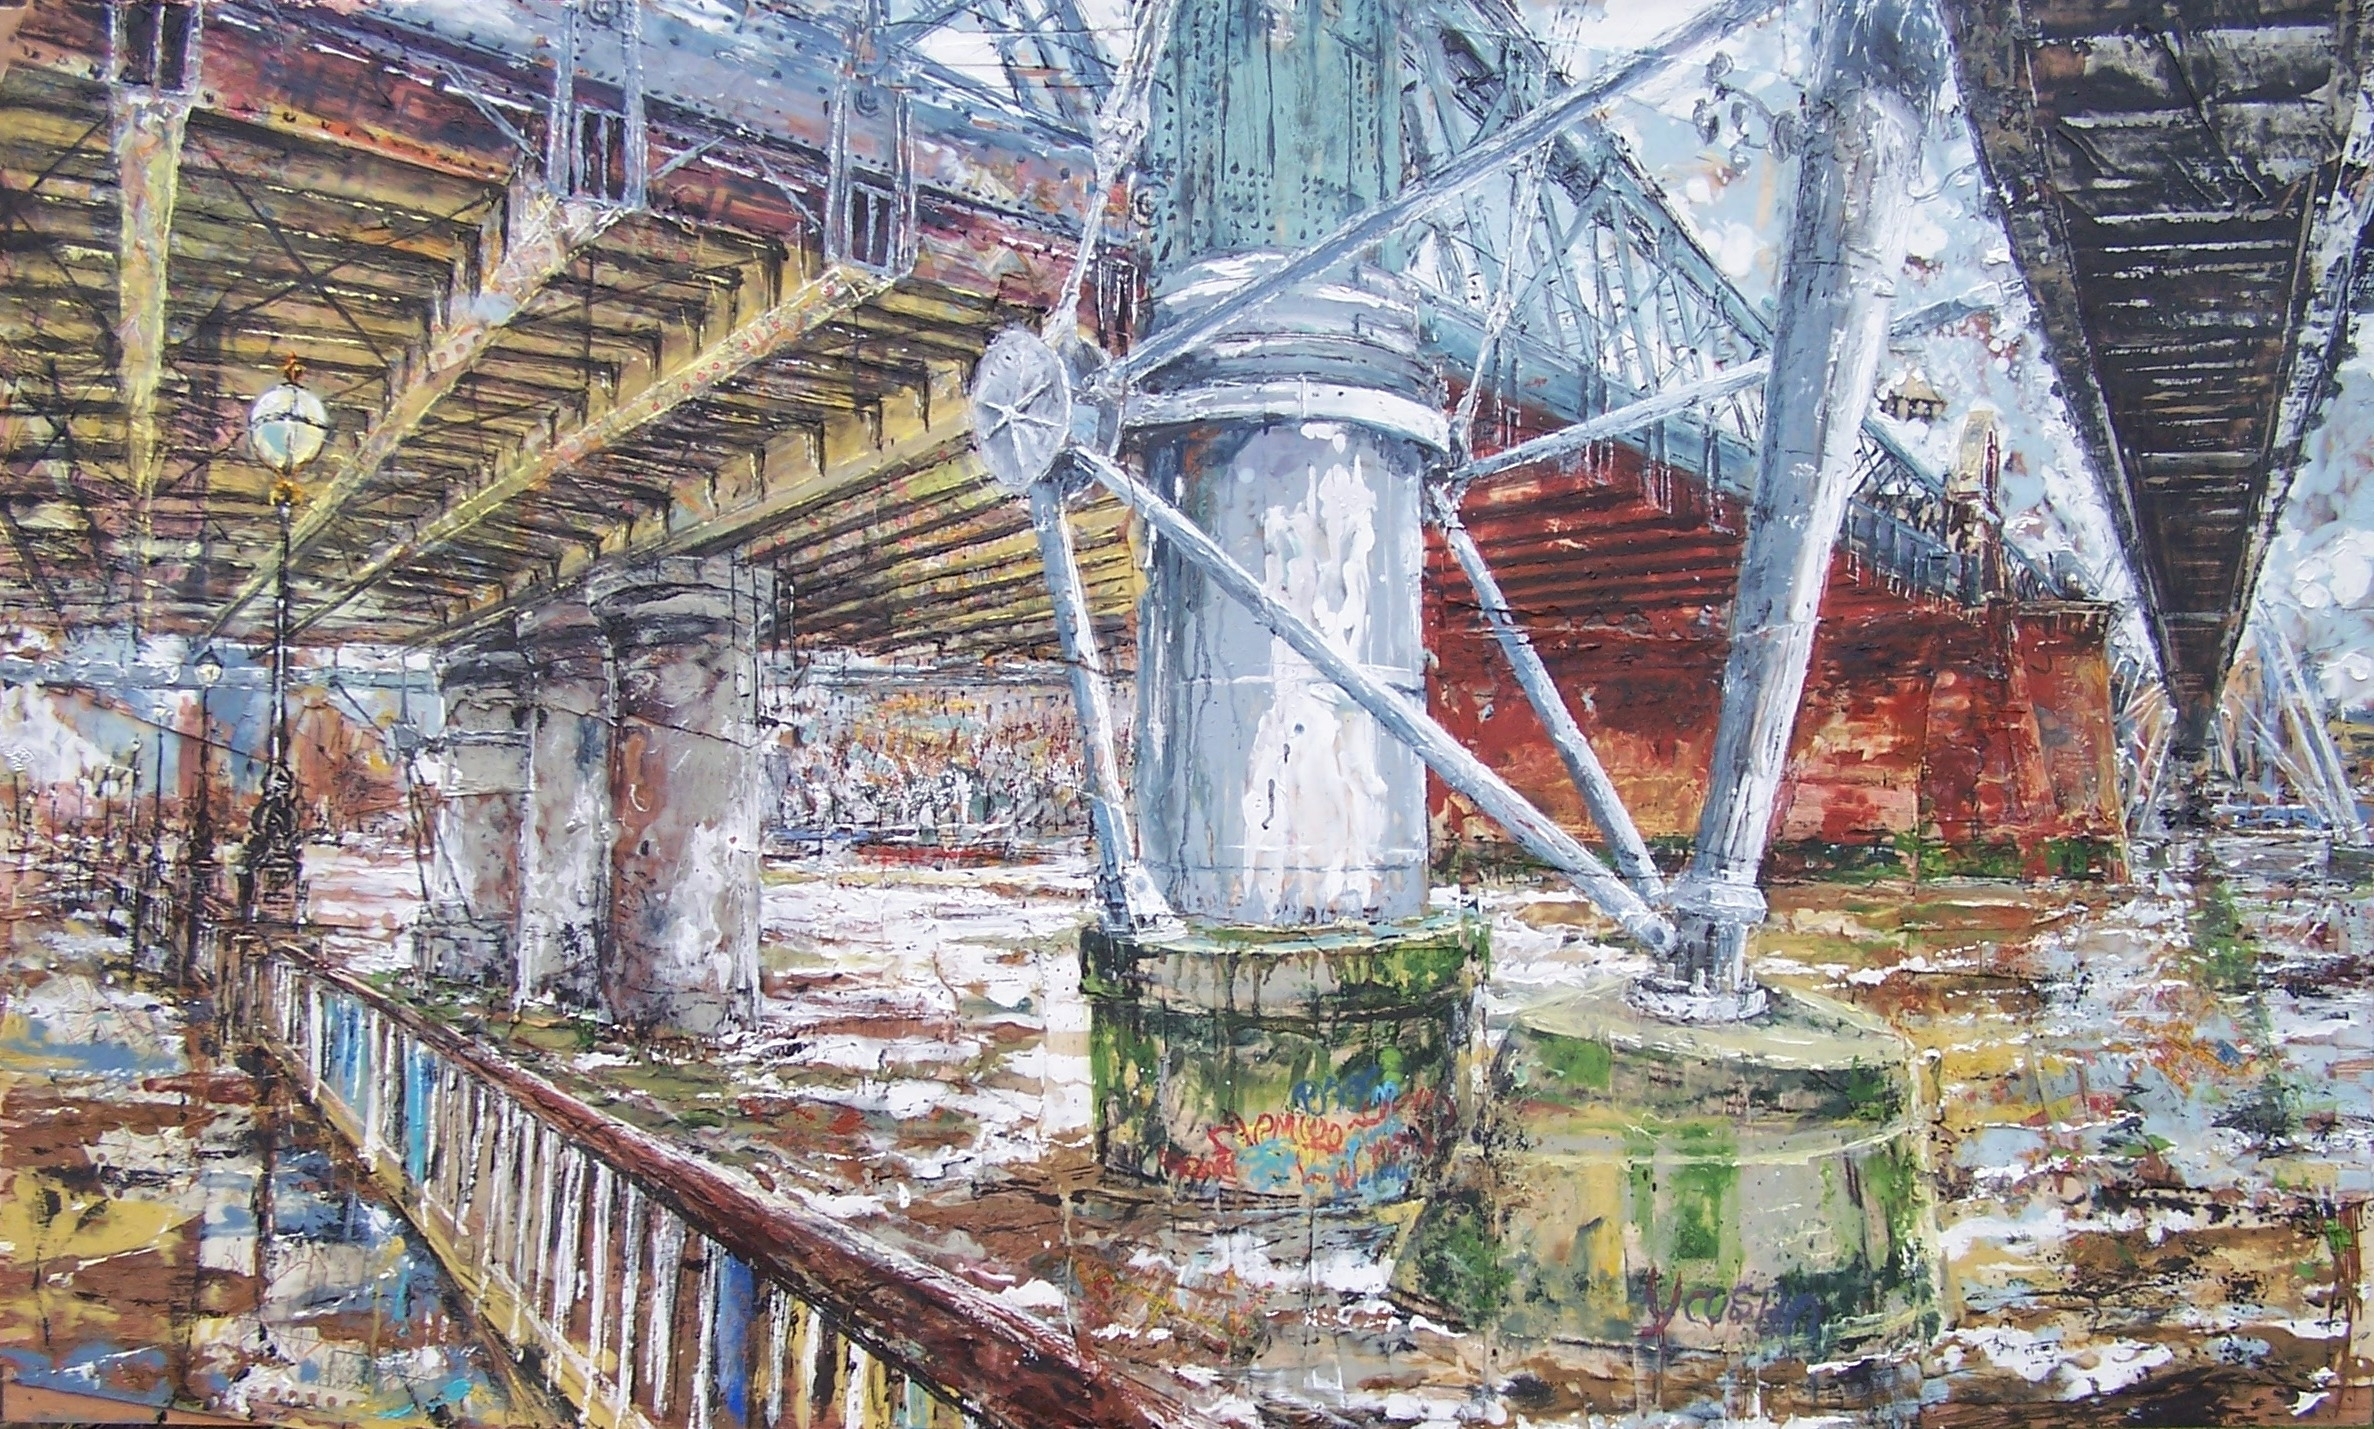 Hungerford Bridge, Thames, Oil paint and collage on wood